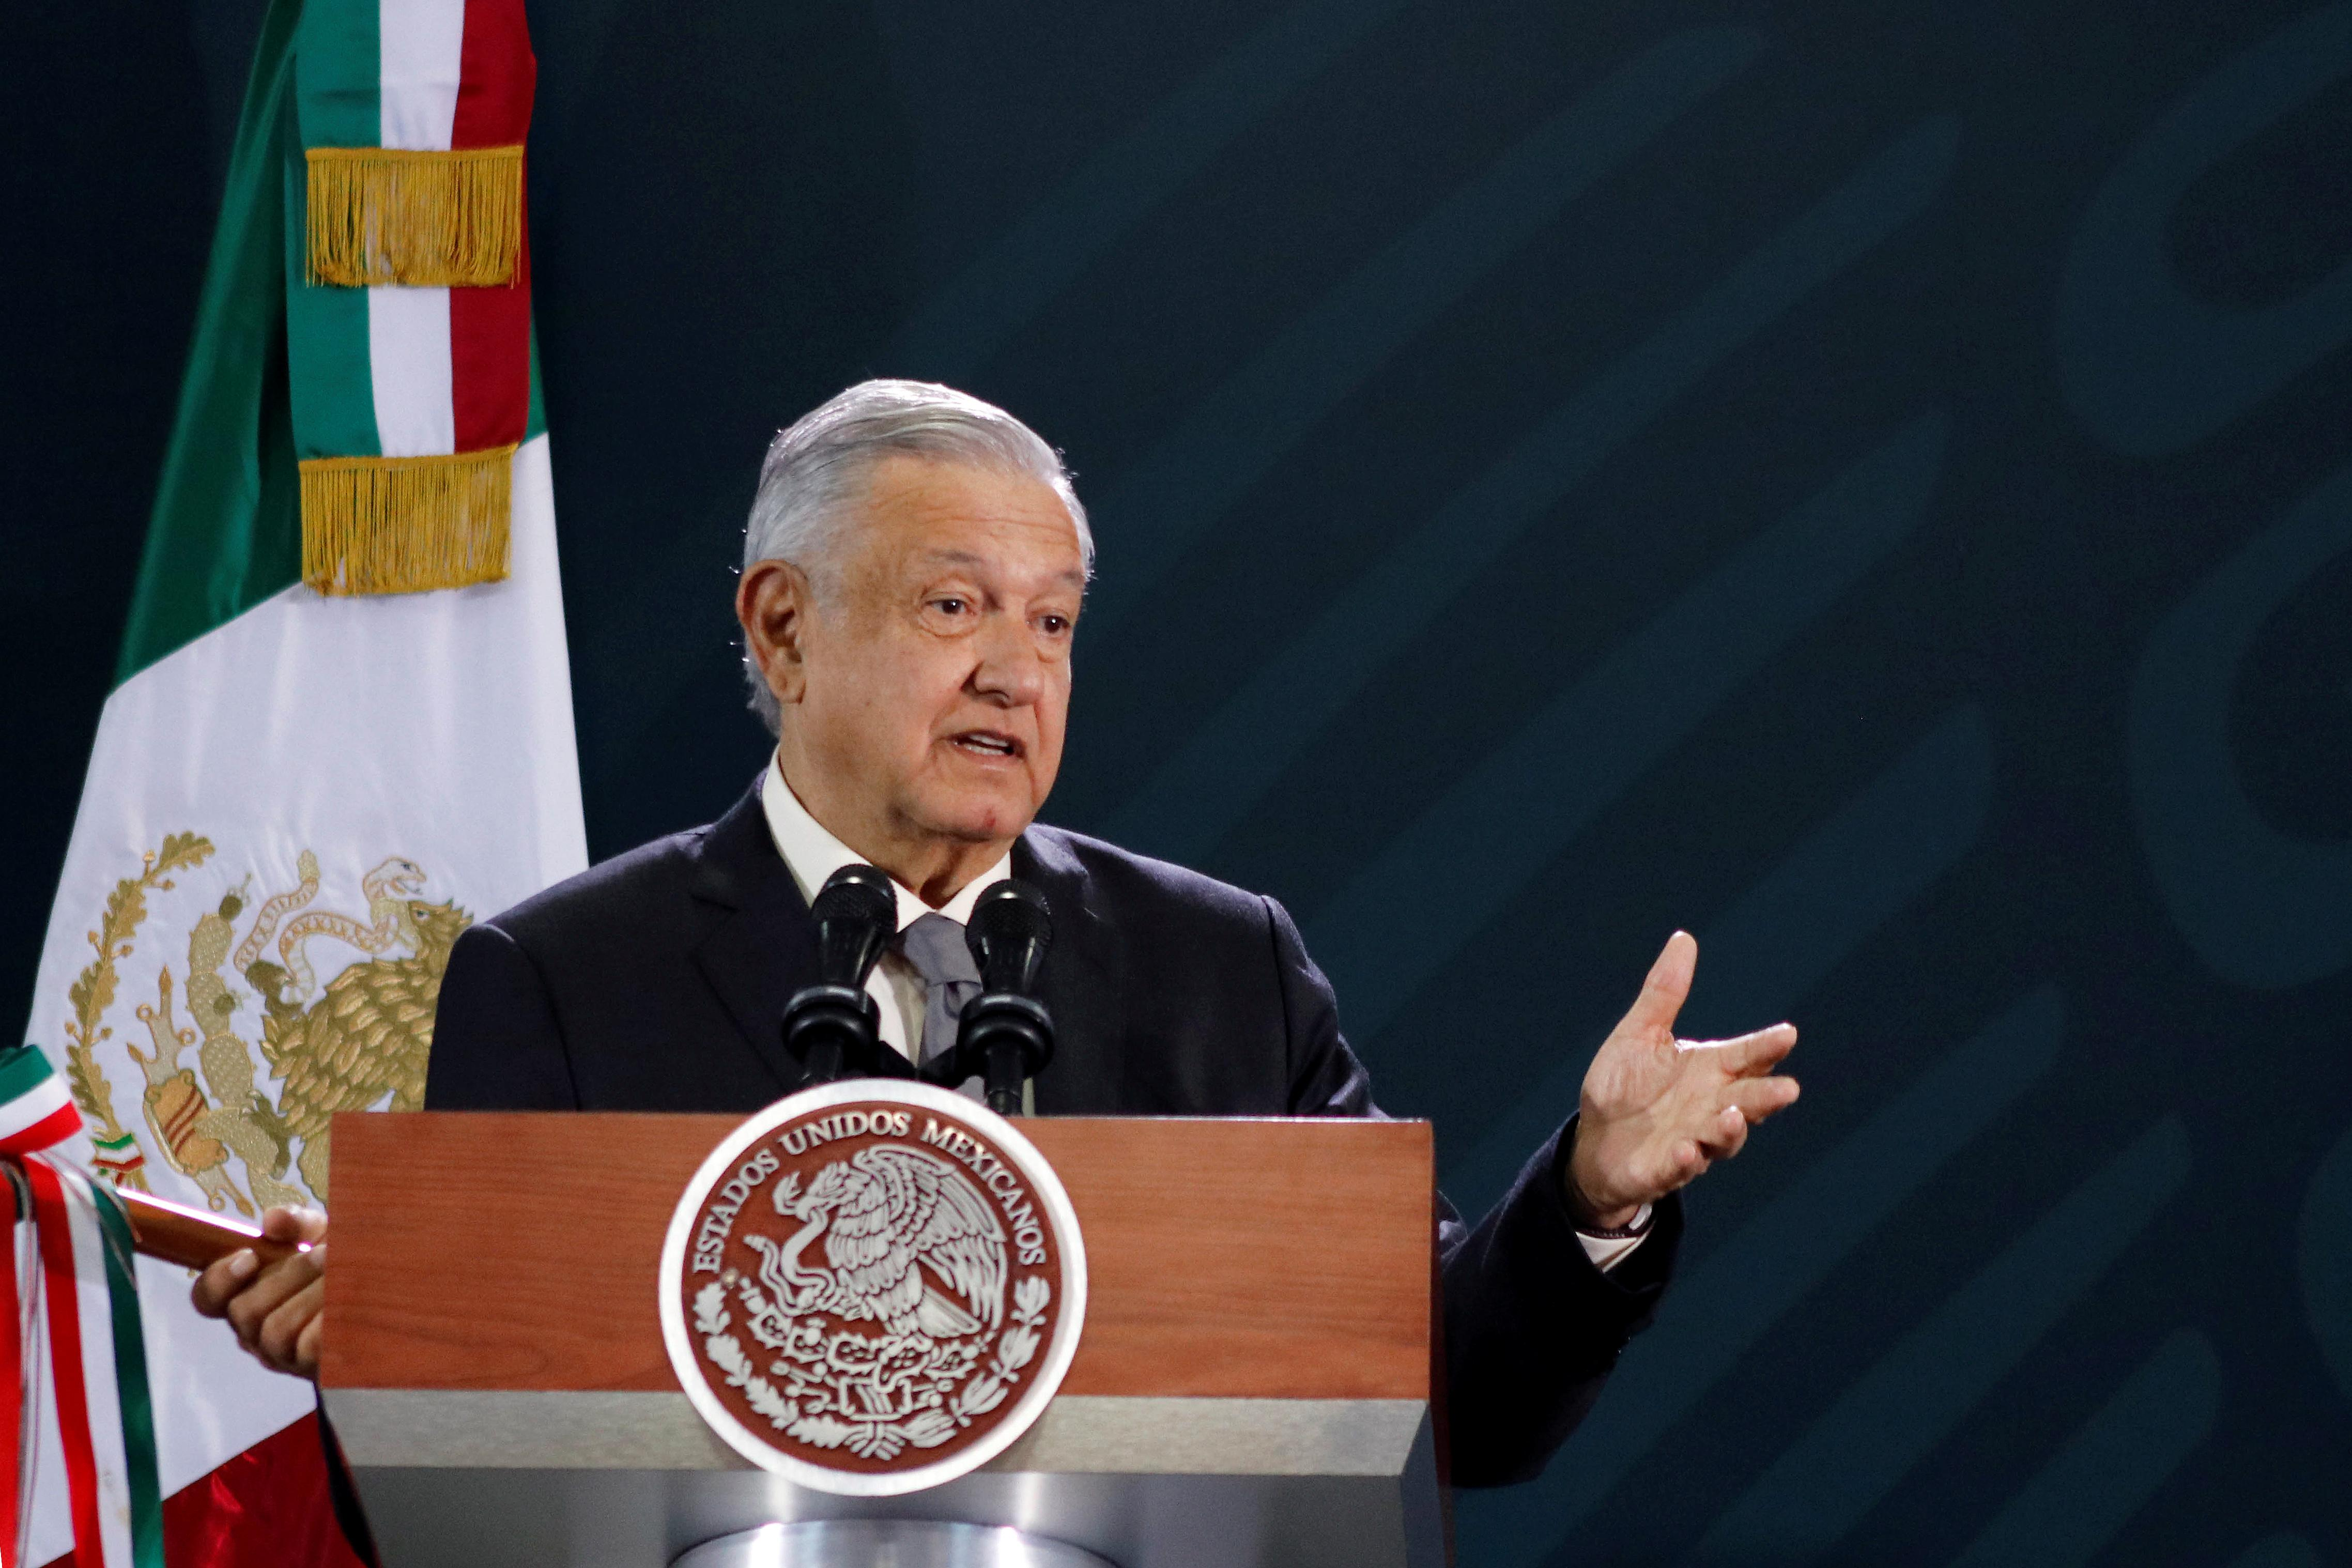 Mexican president says his government does not use Pegasus spyware